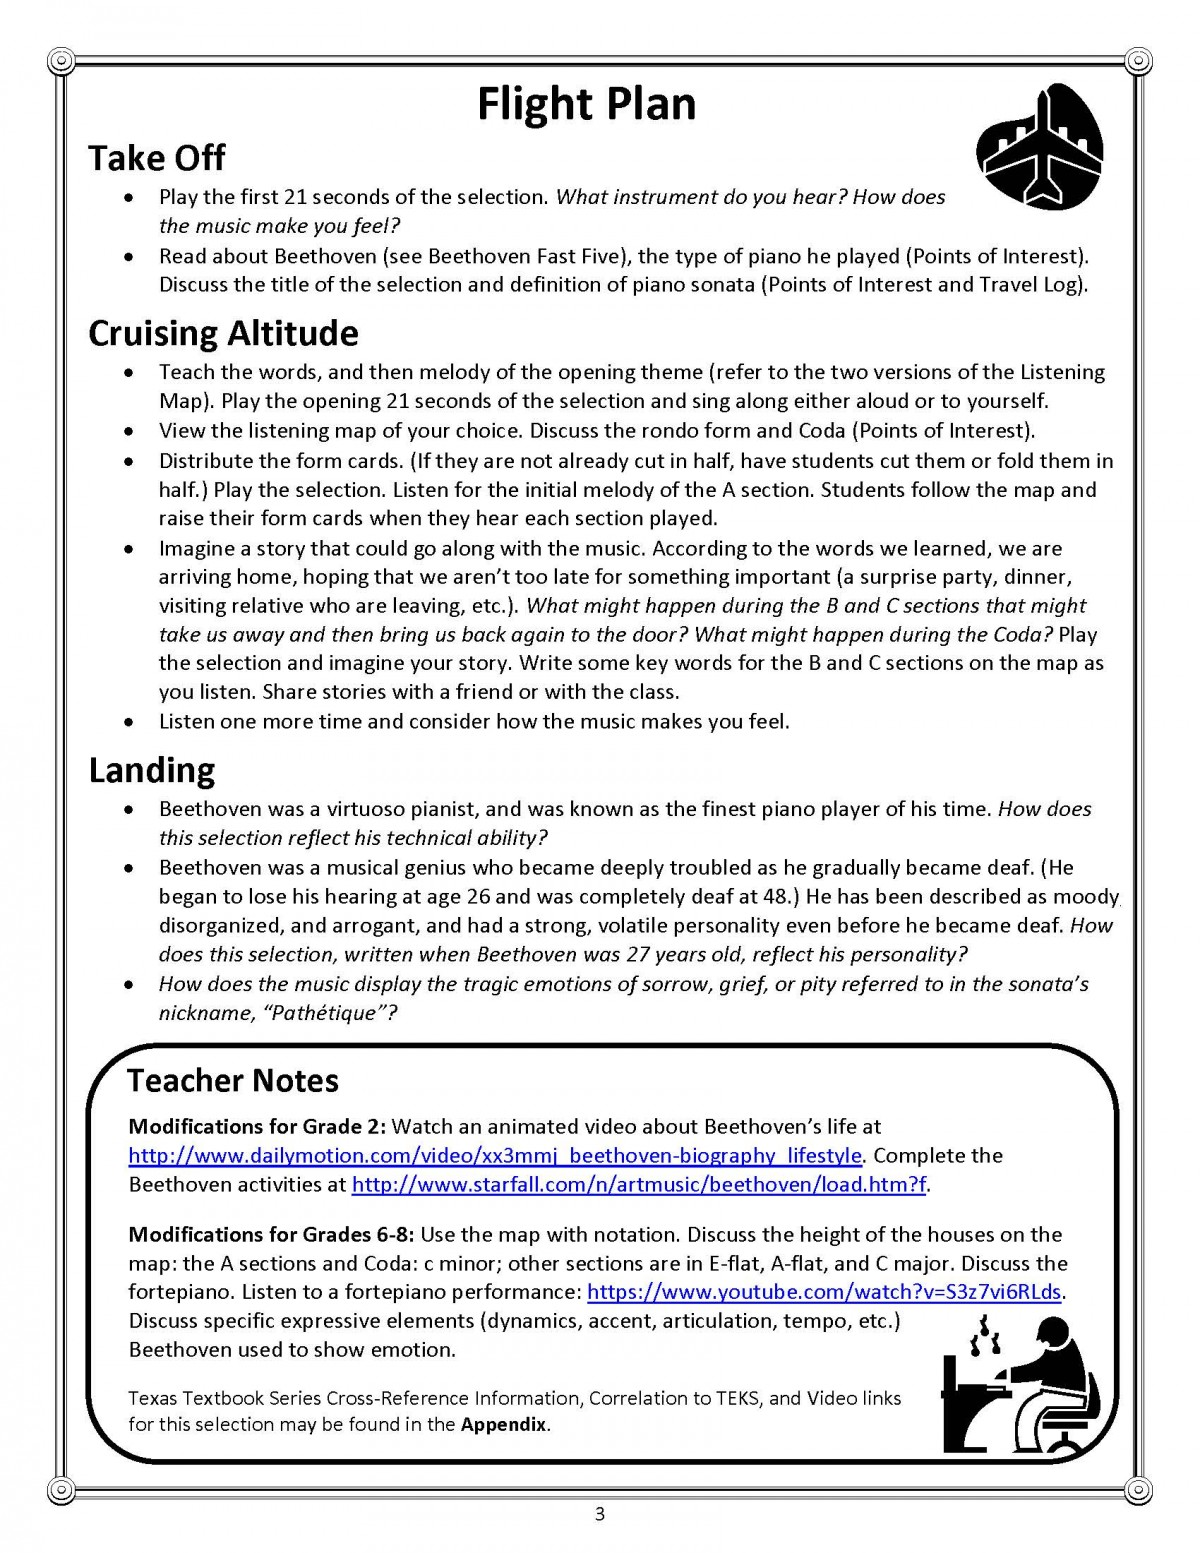 worksheet Beethoven Worksheet uil science middle school practice worksheets worksheet music memory passport university interscholastic league uil